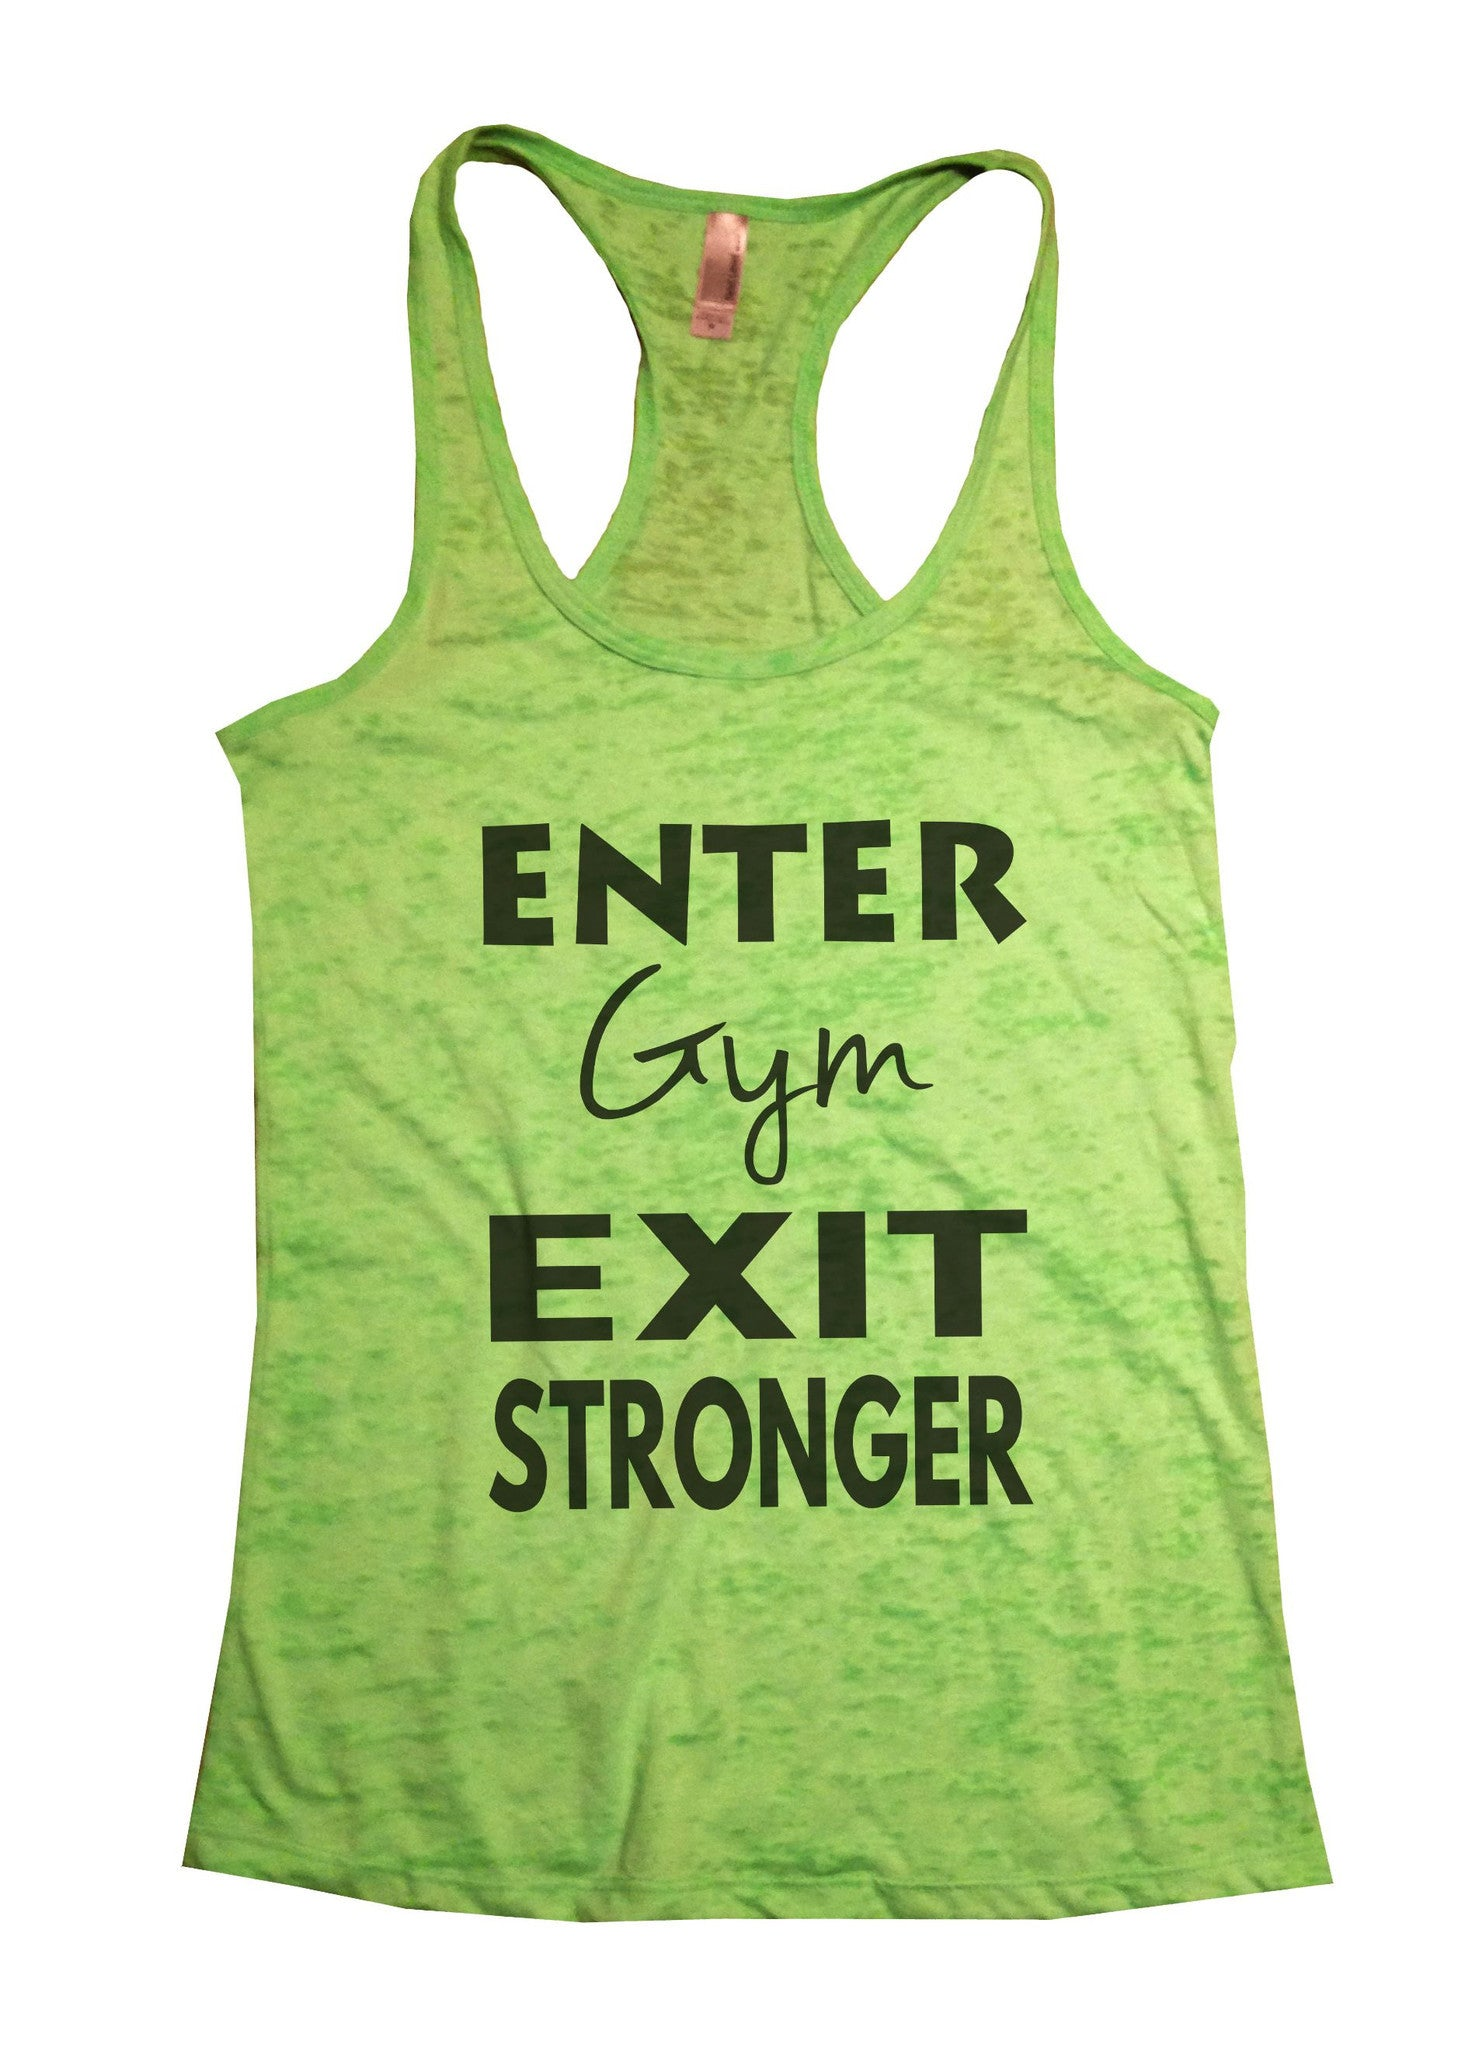 Enter Gym Exit Stronger Burnout Tank Top By BurnoutTankTops.com - 853 - Funny Shirts Tank Tops Burnouts and Triblends  - 2